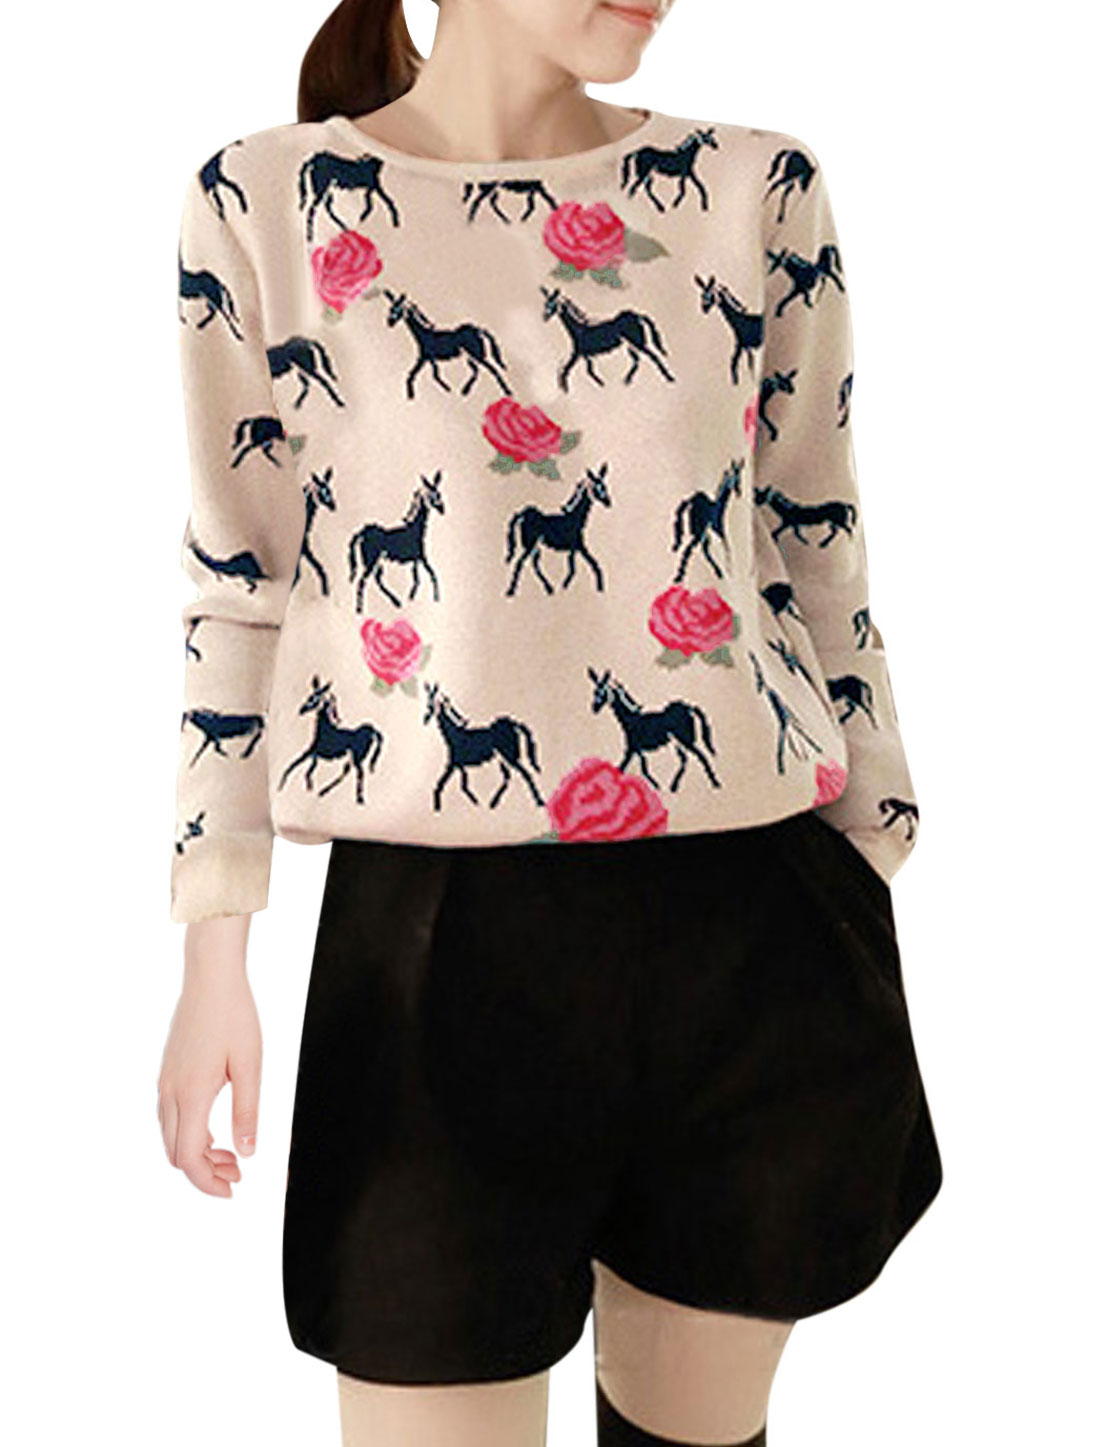 Lady Pullover Floral Horse Pattern Leisure Knit Shirt Beige XS